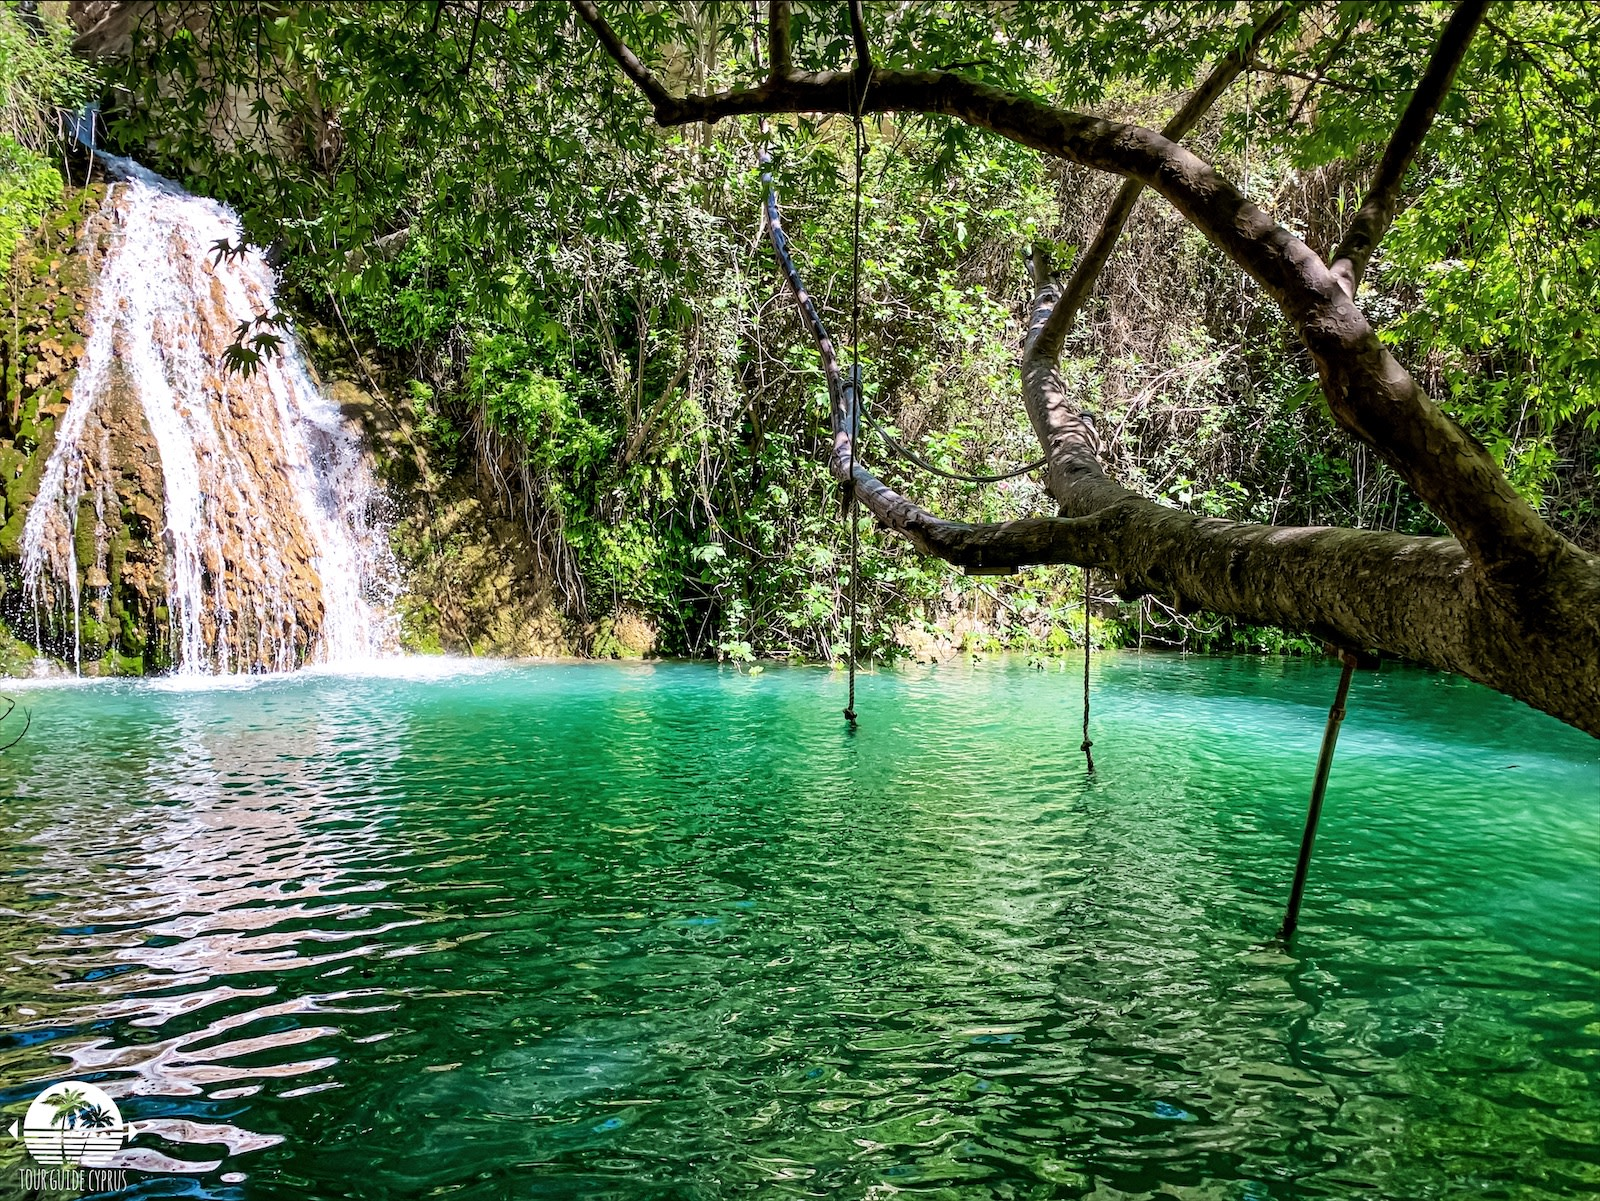 Relax at the  Adonis Baths Waterfall in Paphos